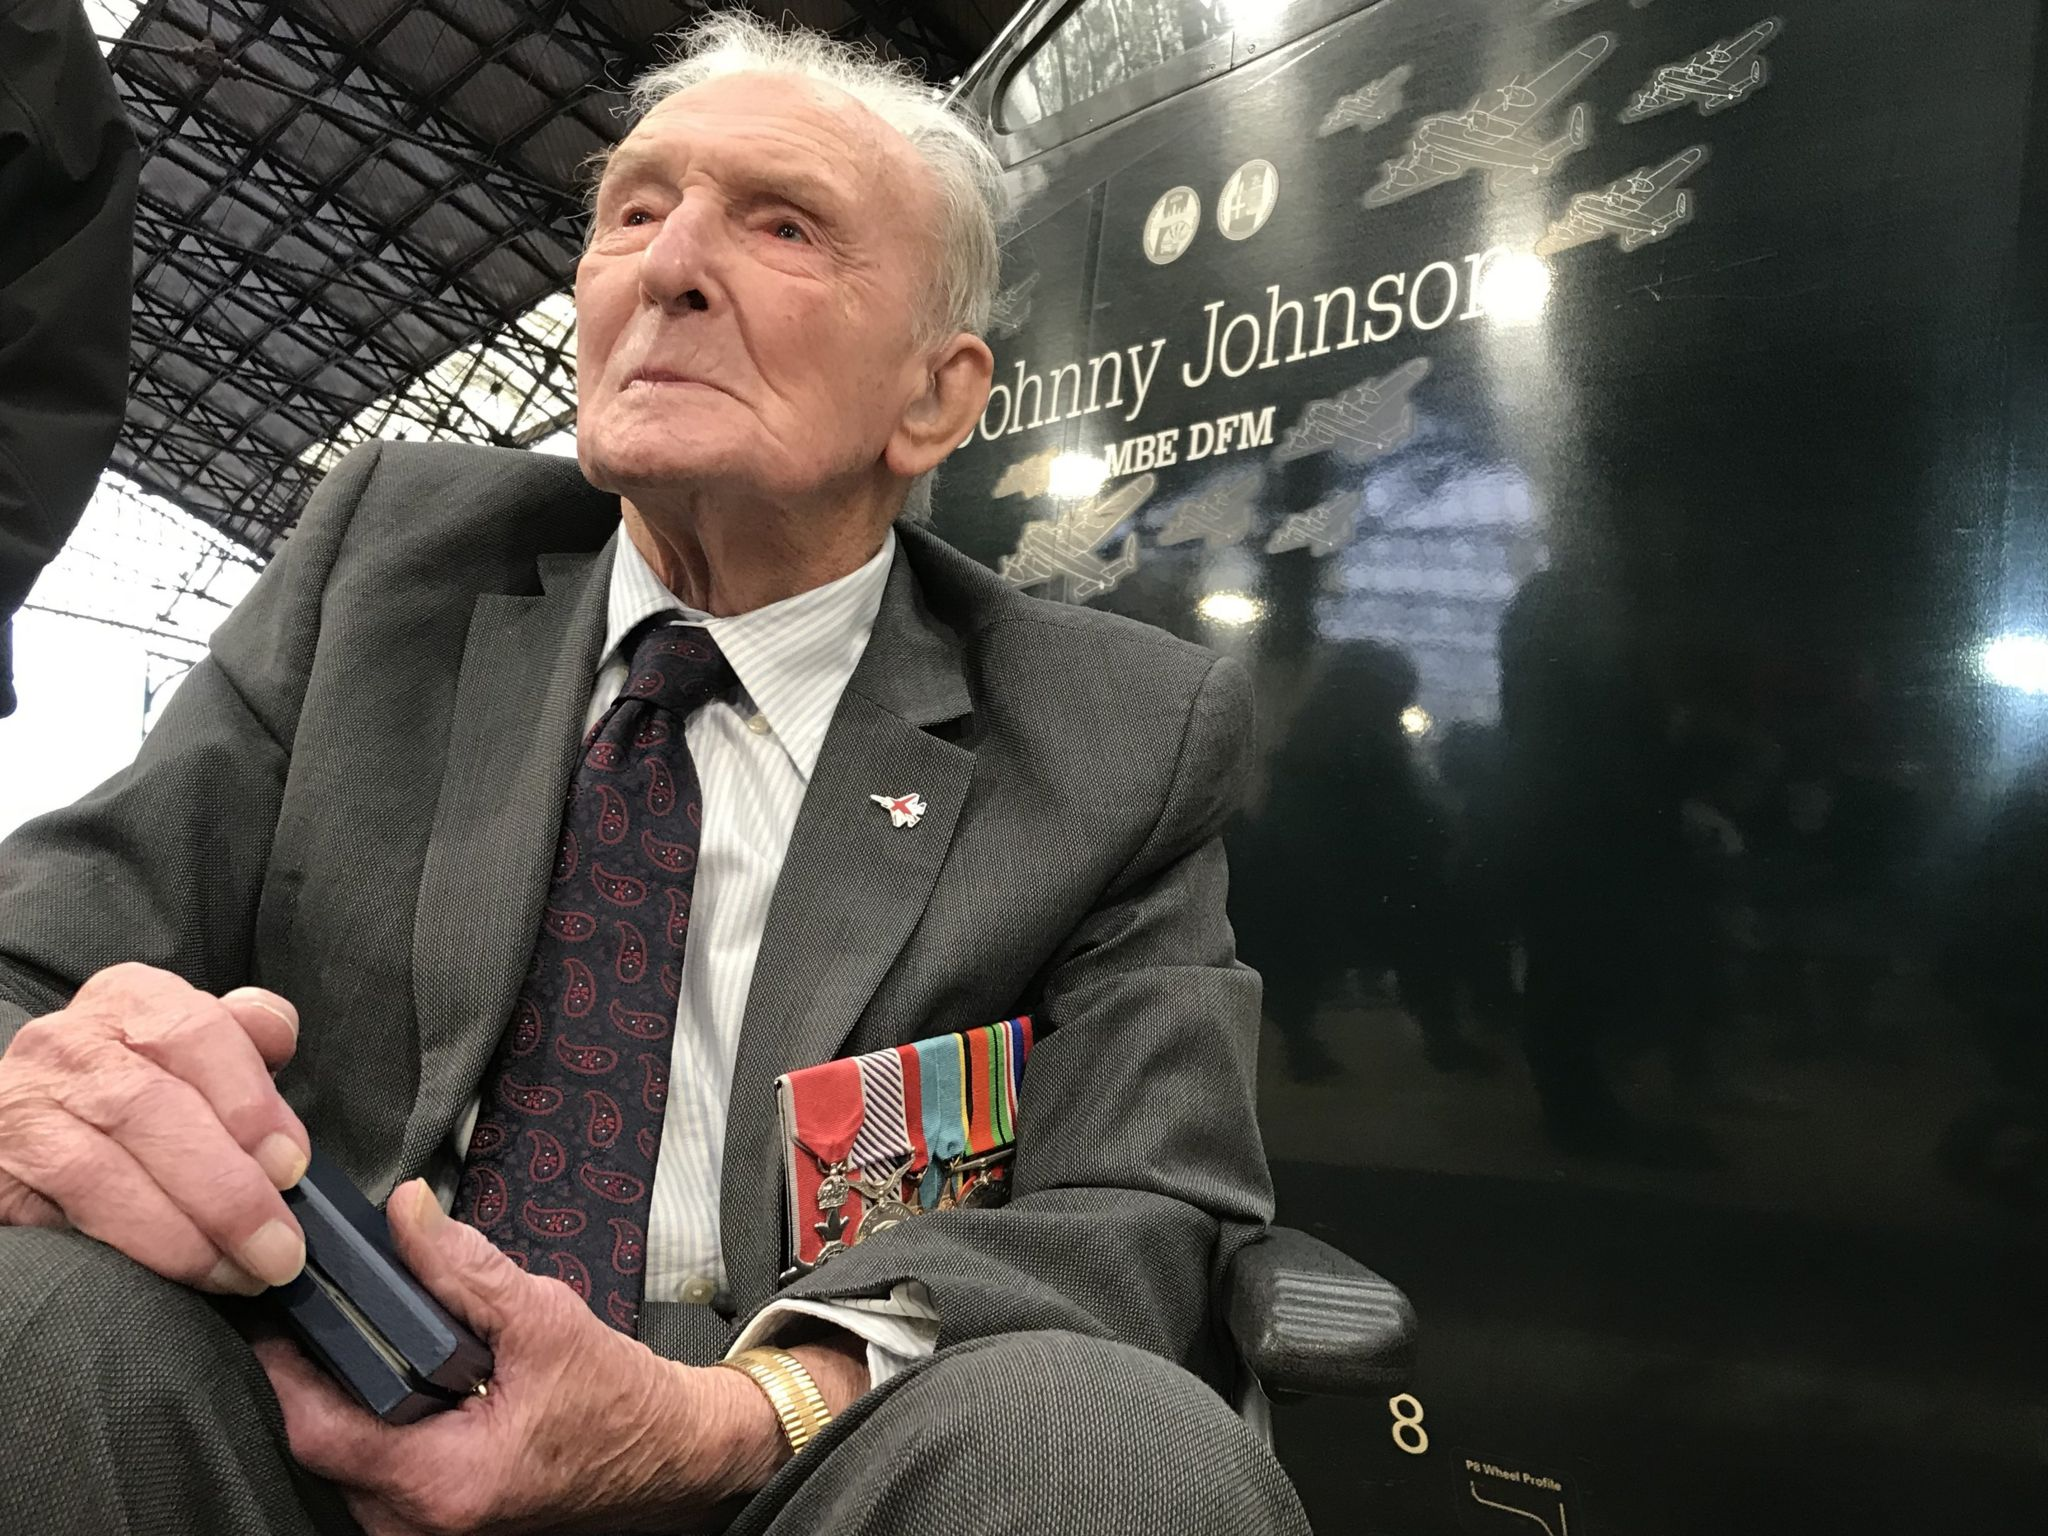 George 'Johnny' Johnson MBE